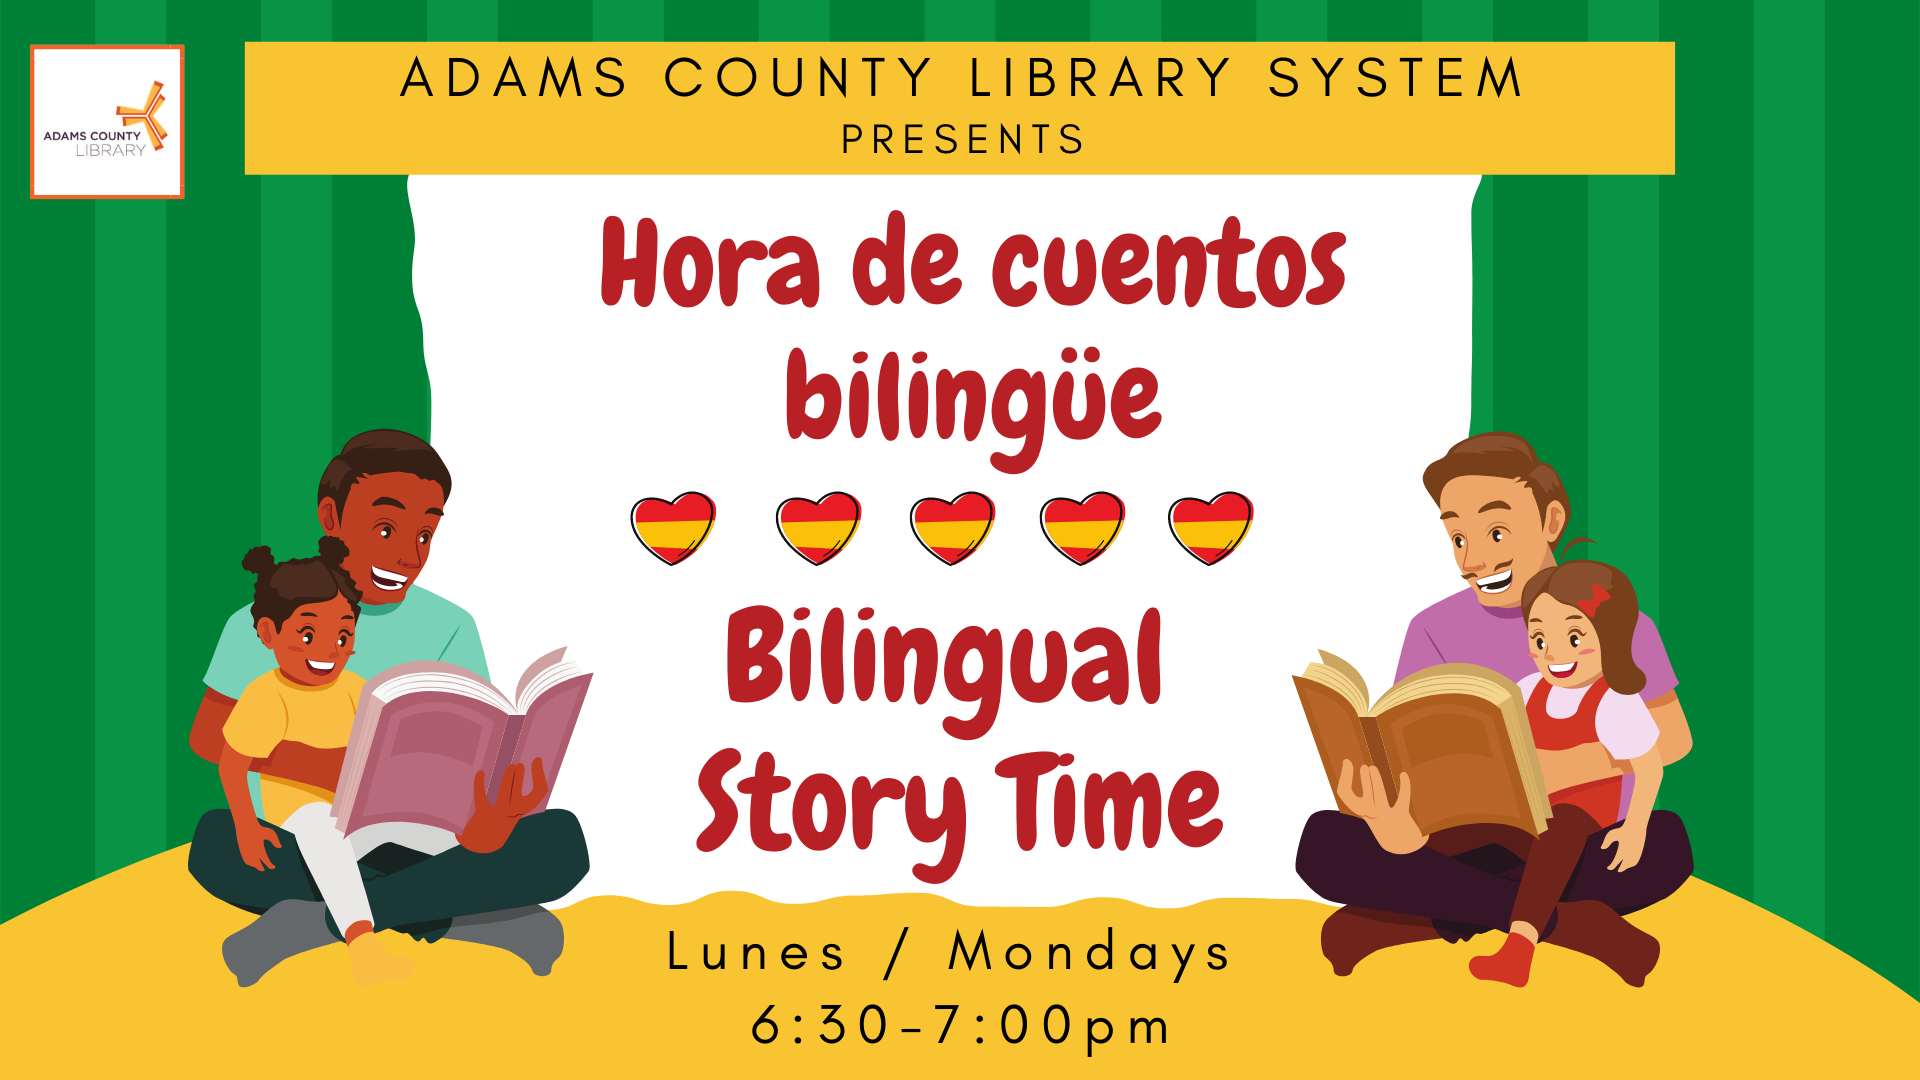 Image of the flyer for the bilingual storytime program